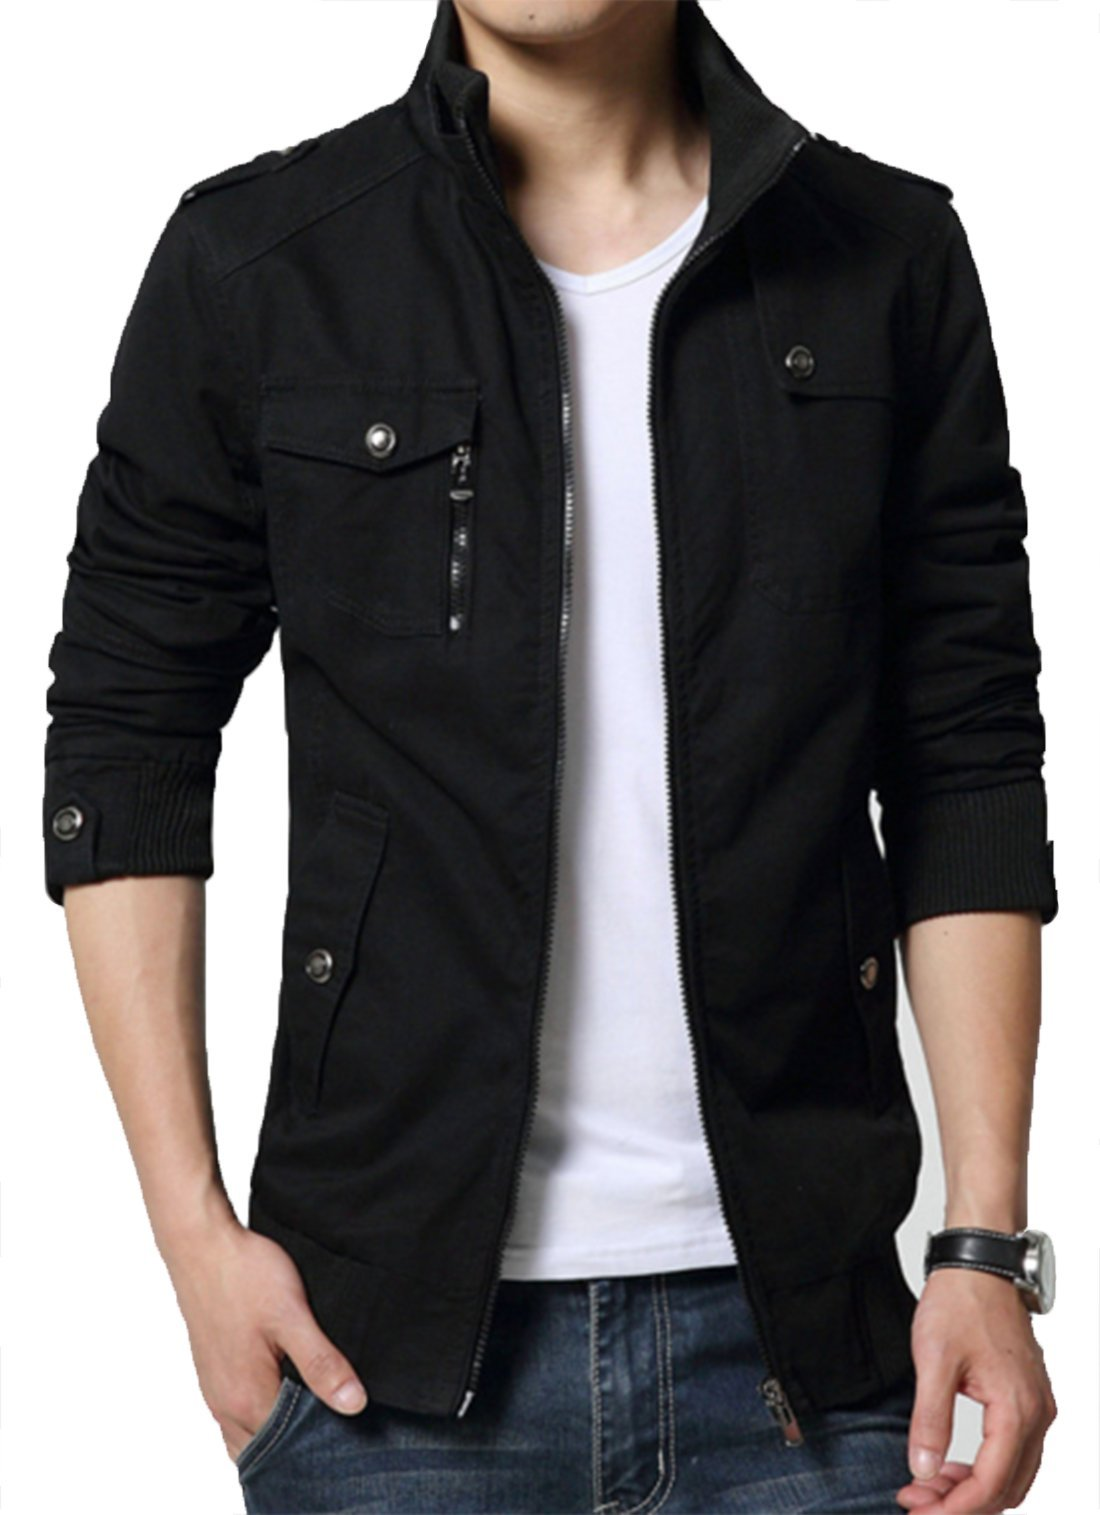 XueYin Men's Solid Cotton Casual Wear Stand Collar Jacket(Black,M Size) by XueYin